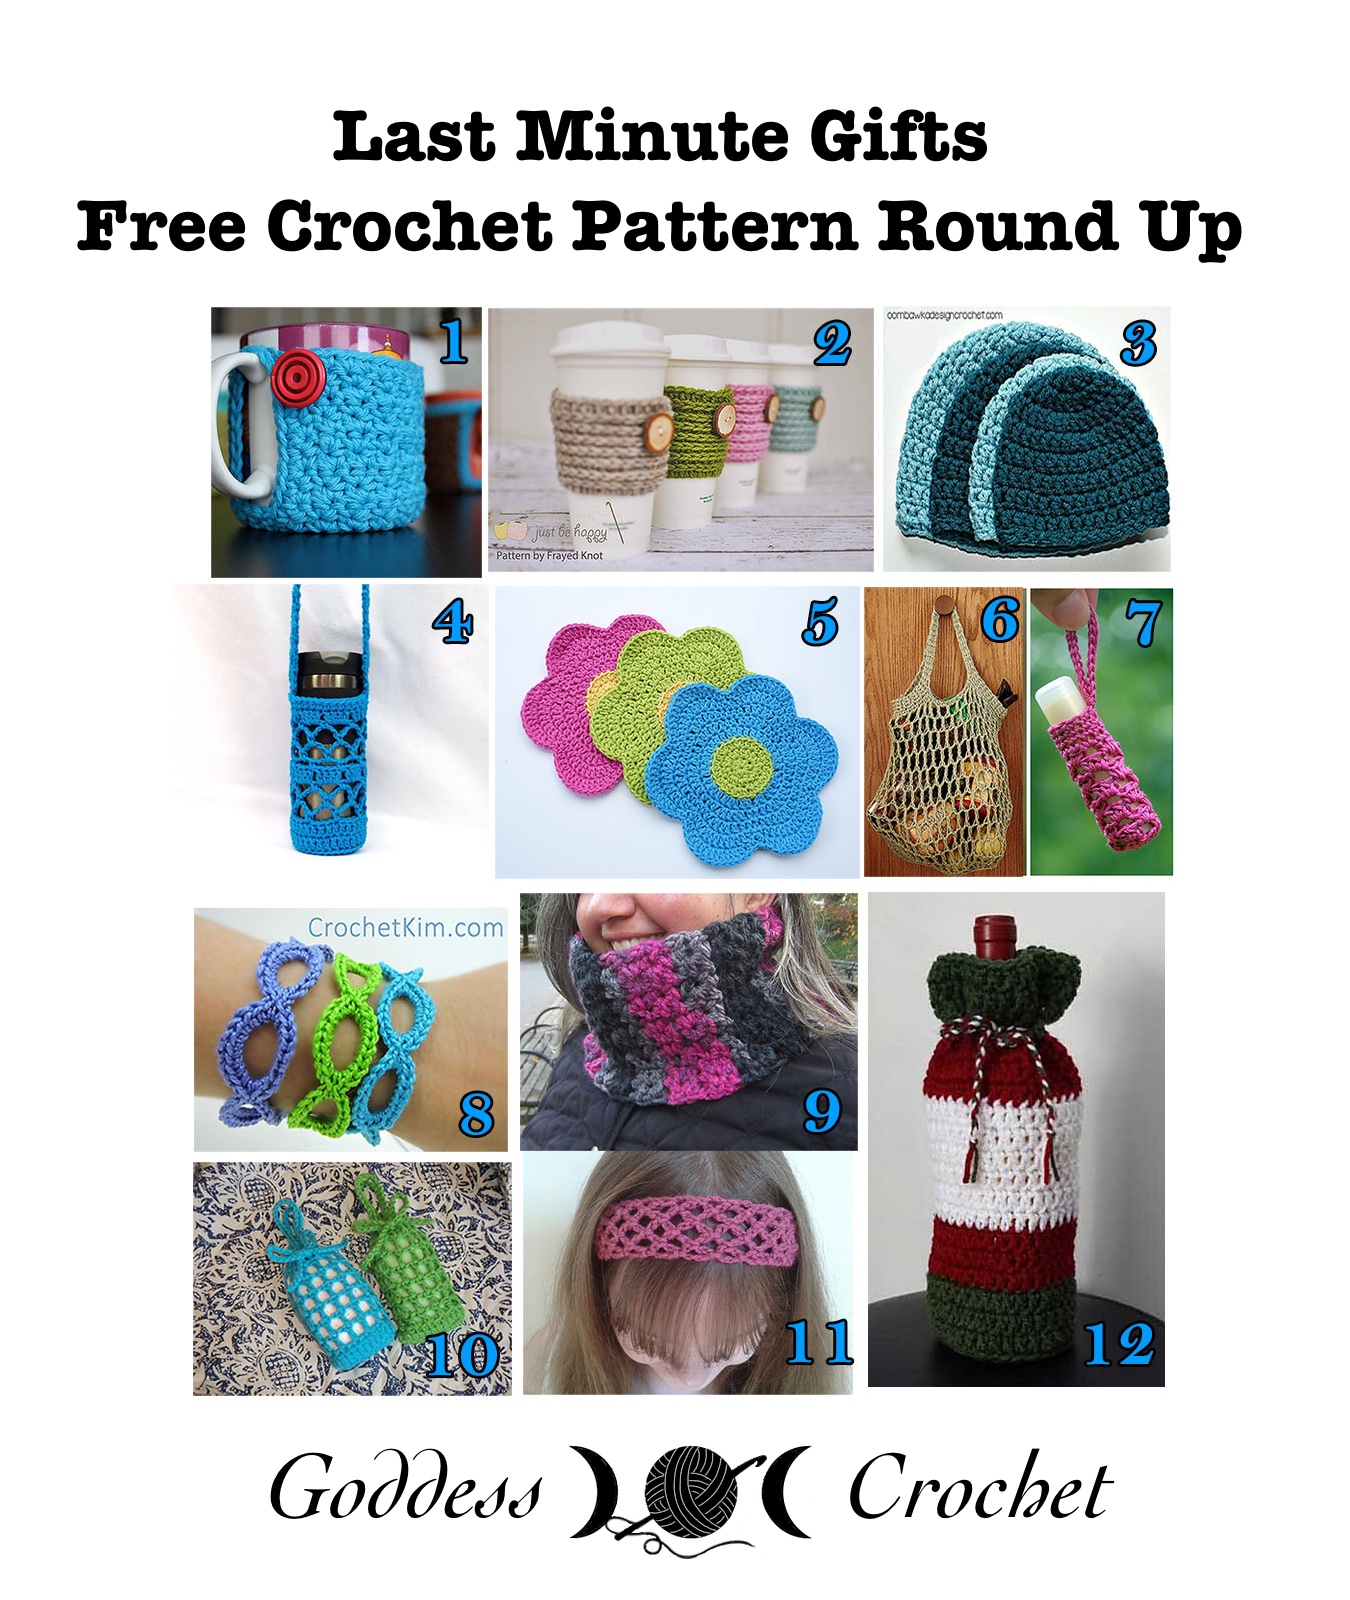 ... - Crochet Gifts Last Minute Crochet Gift Patterns Free Fast Crochet